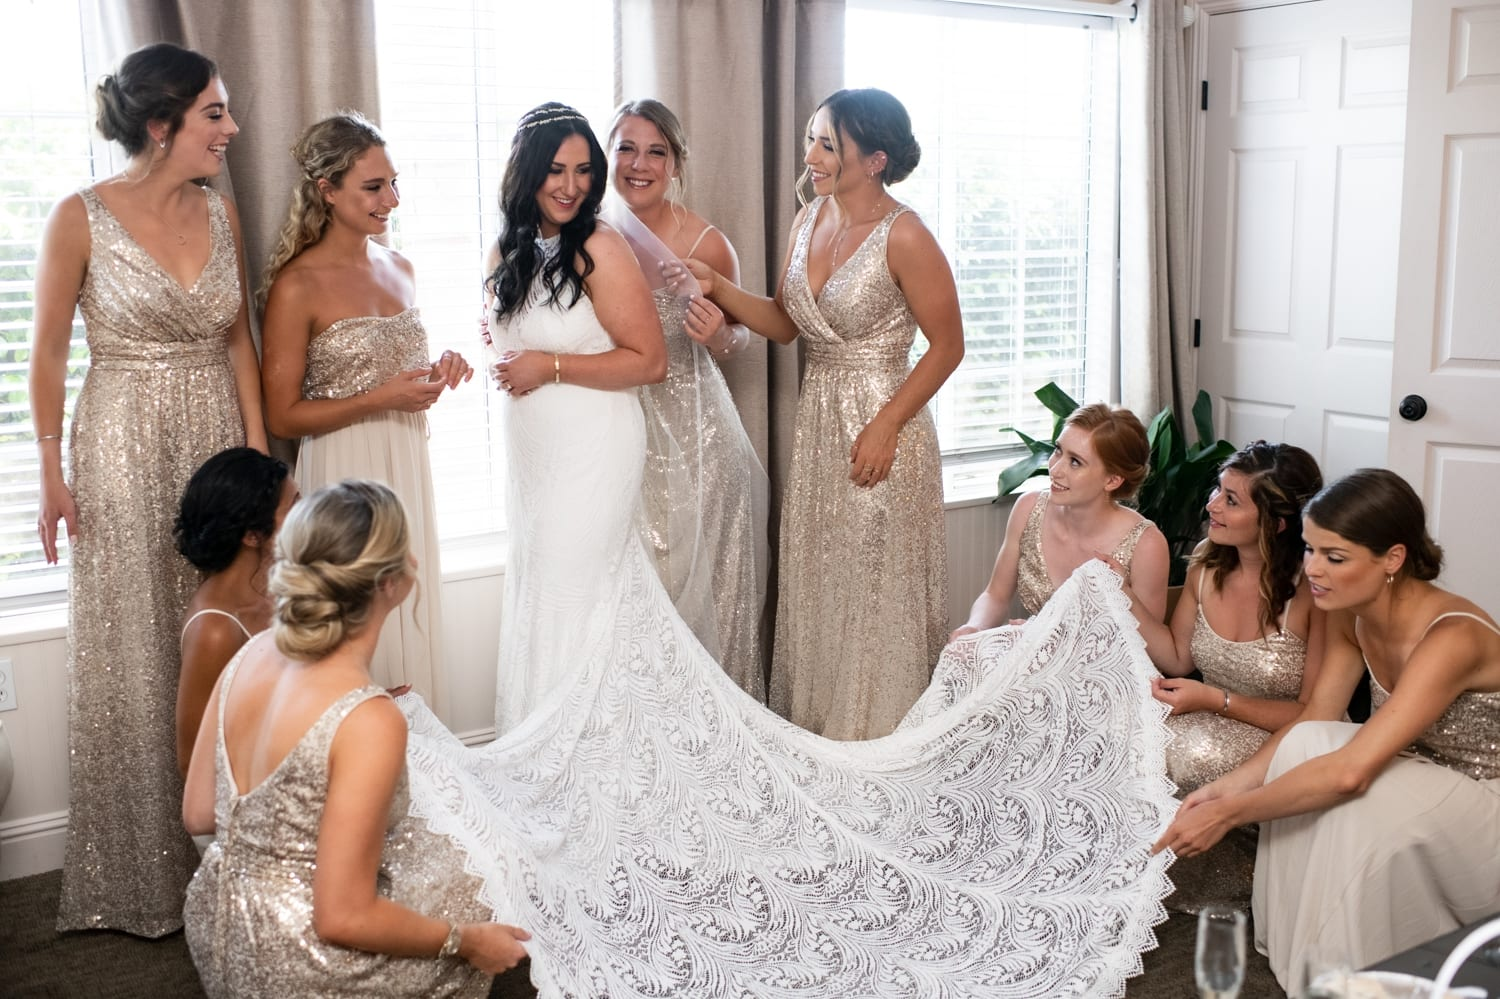 Bridesmaids helping bride get ready for her wedding.